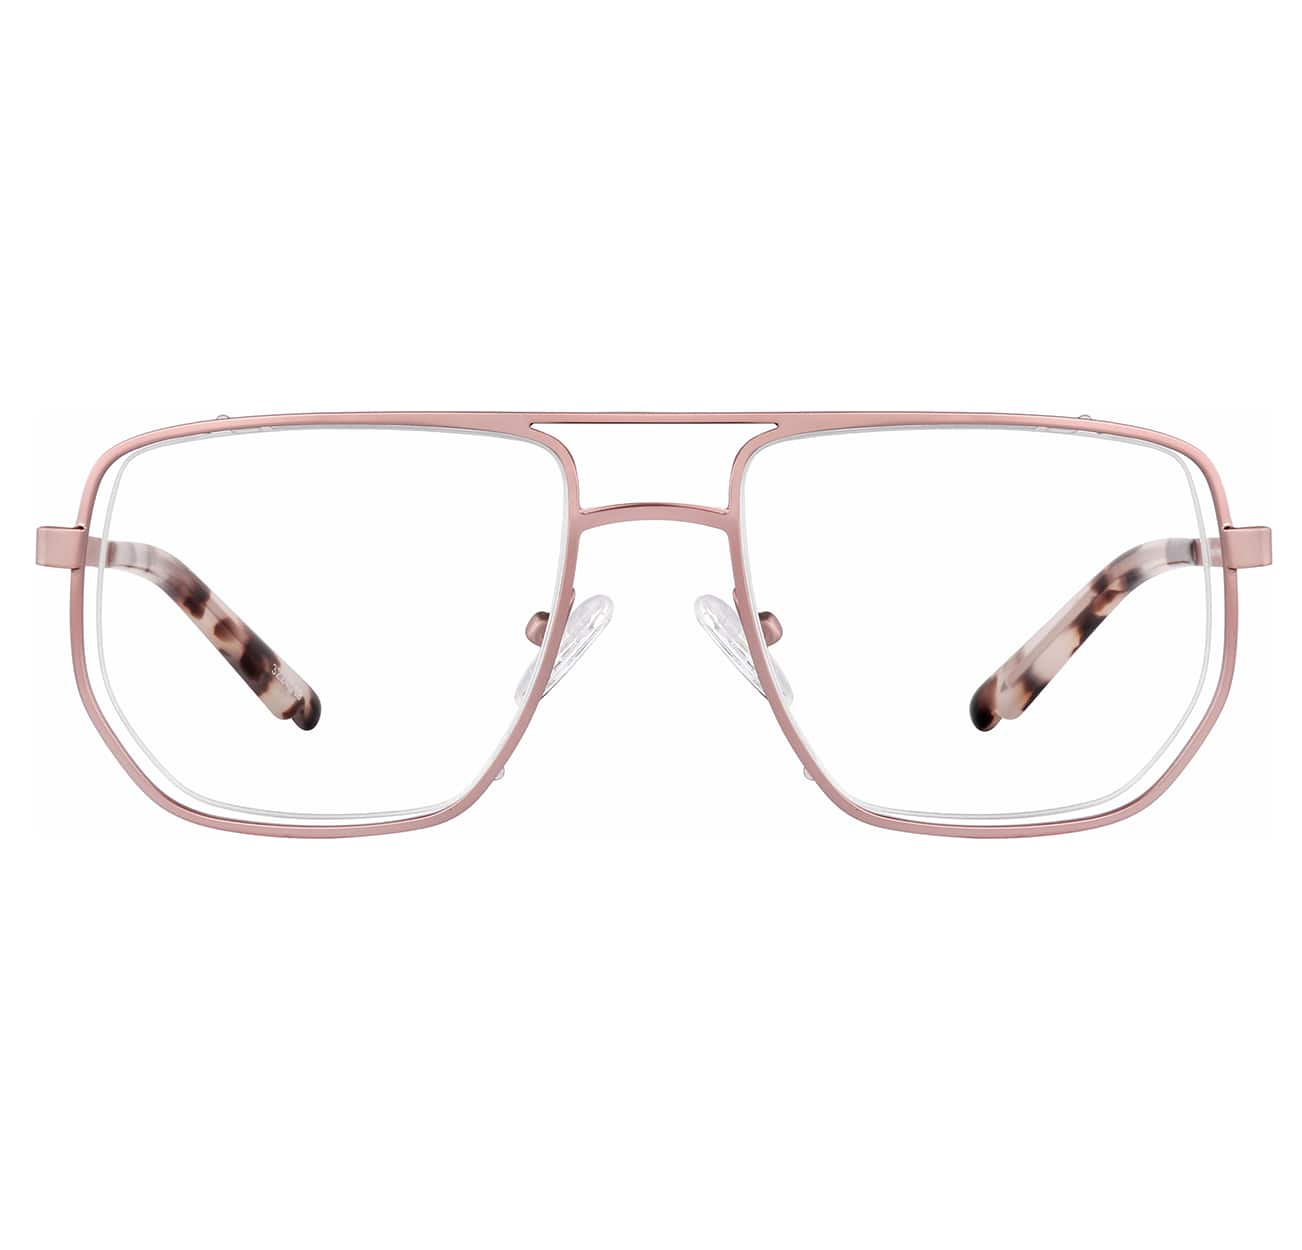 Image of Zenni rose gold aviator glasses #3224519 I am powerful